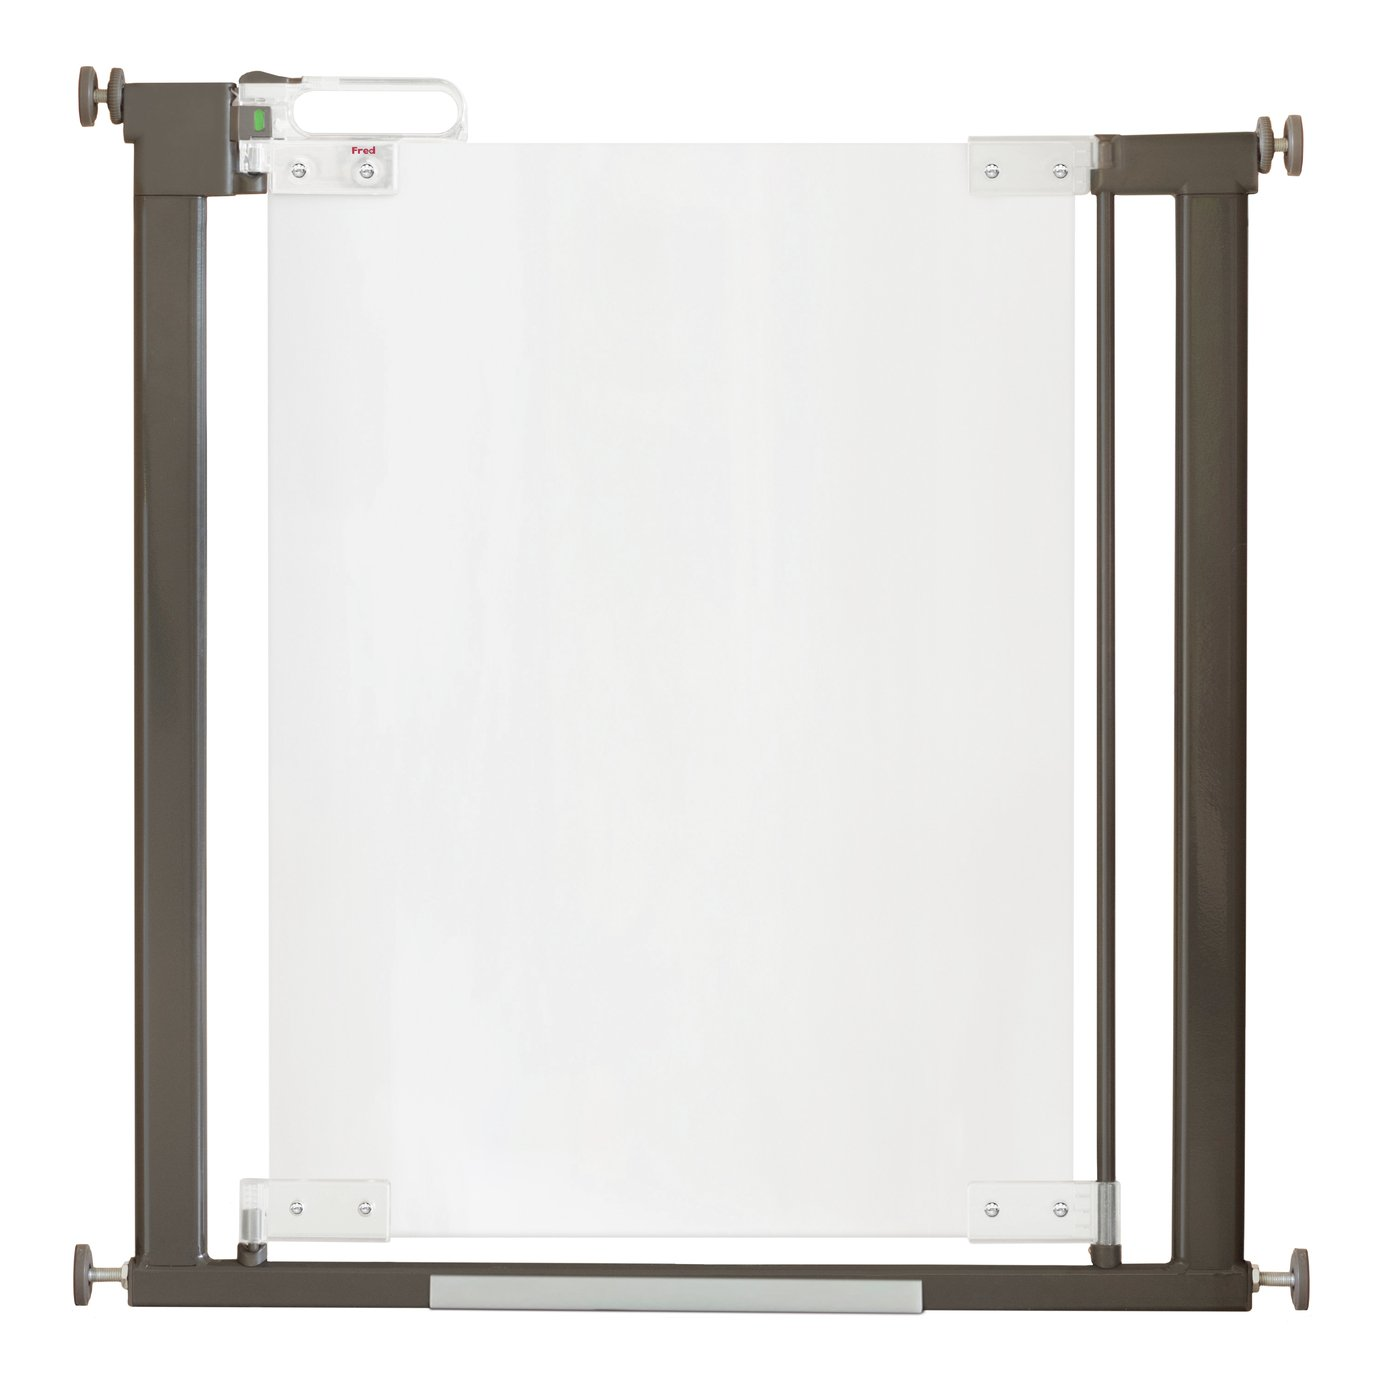 Fred Pressure Fit Clear-View Stairgate